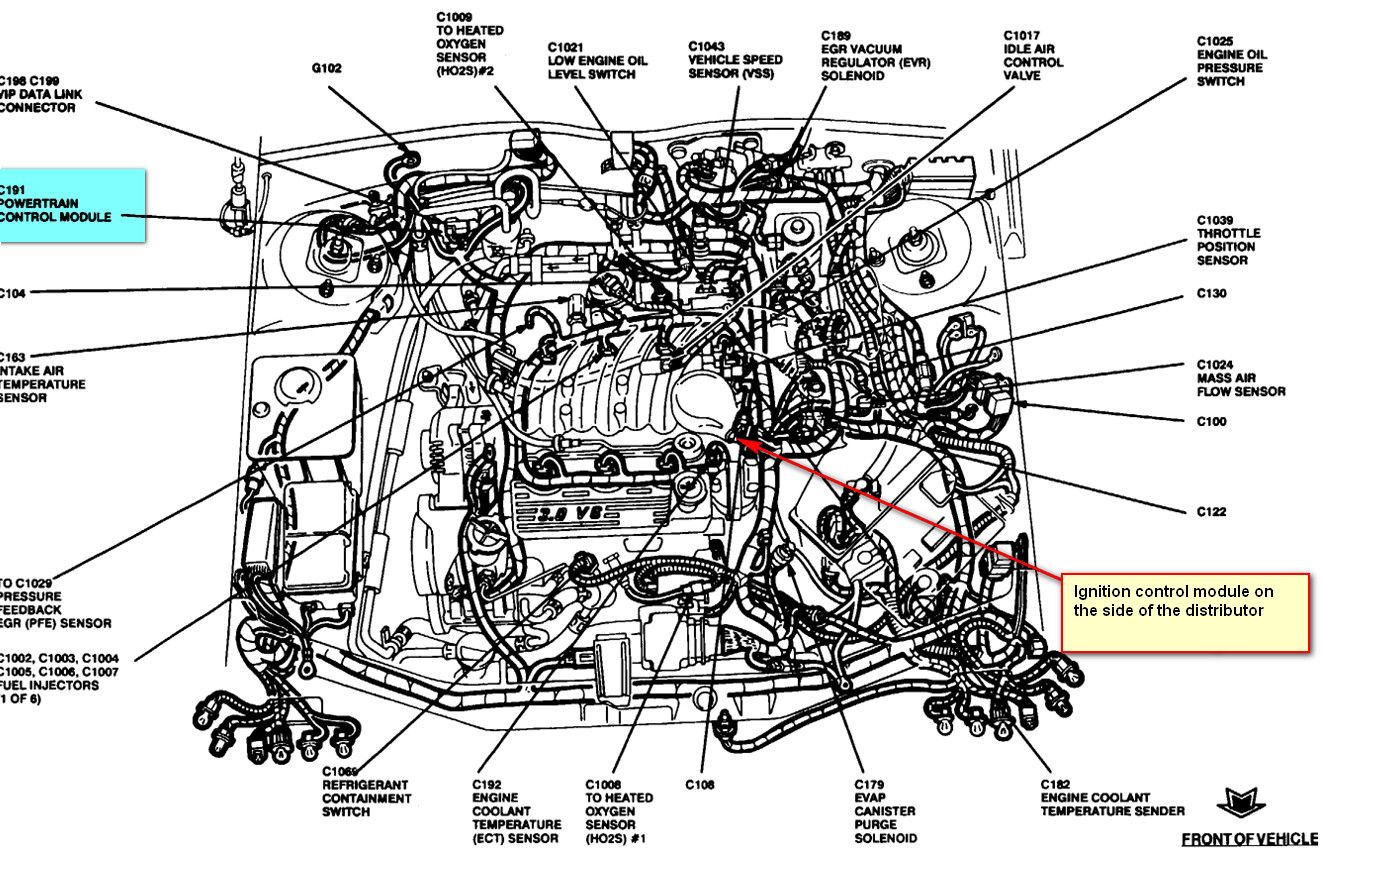 Ford Taurus Pcm Diagram | Wiring Diagram on